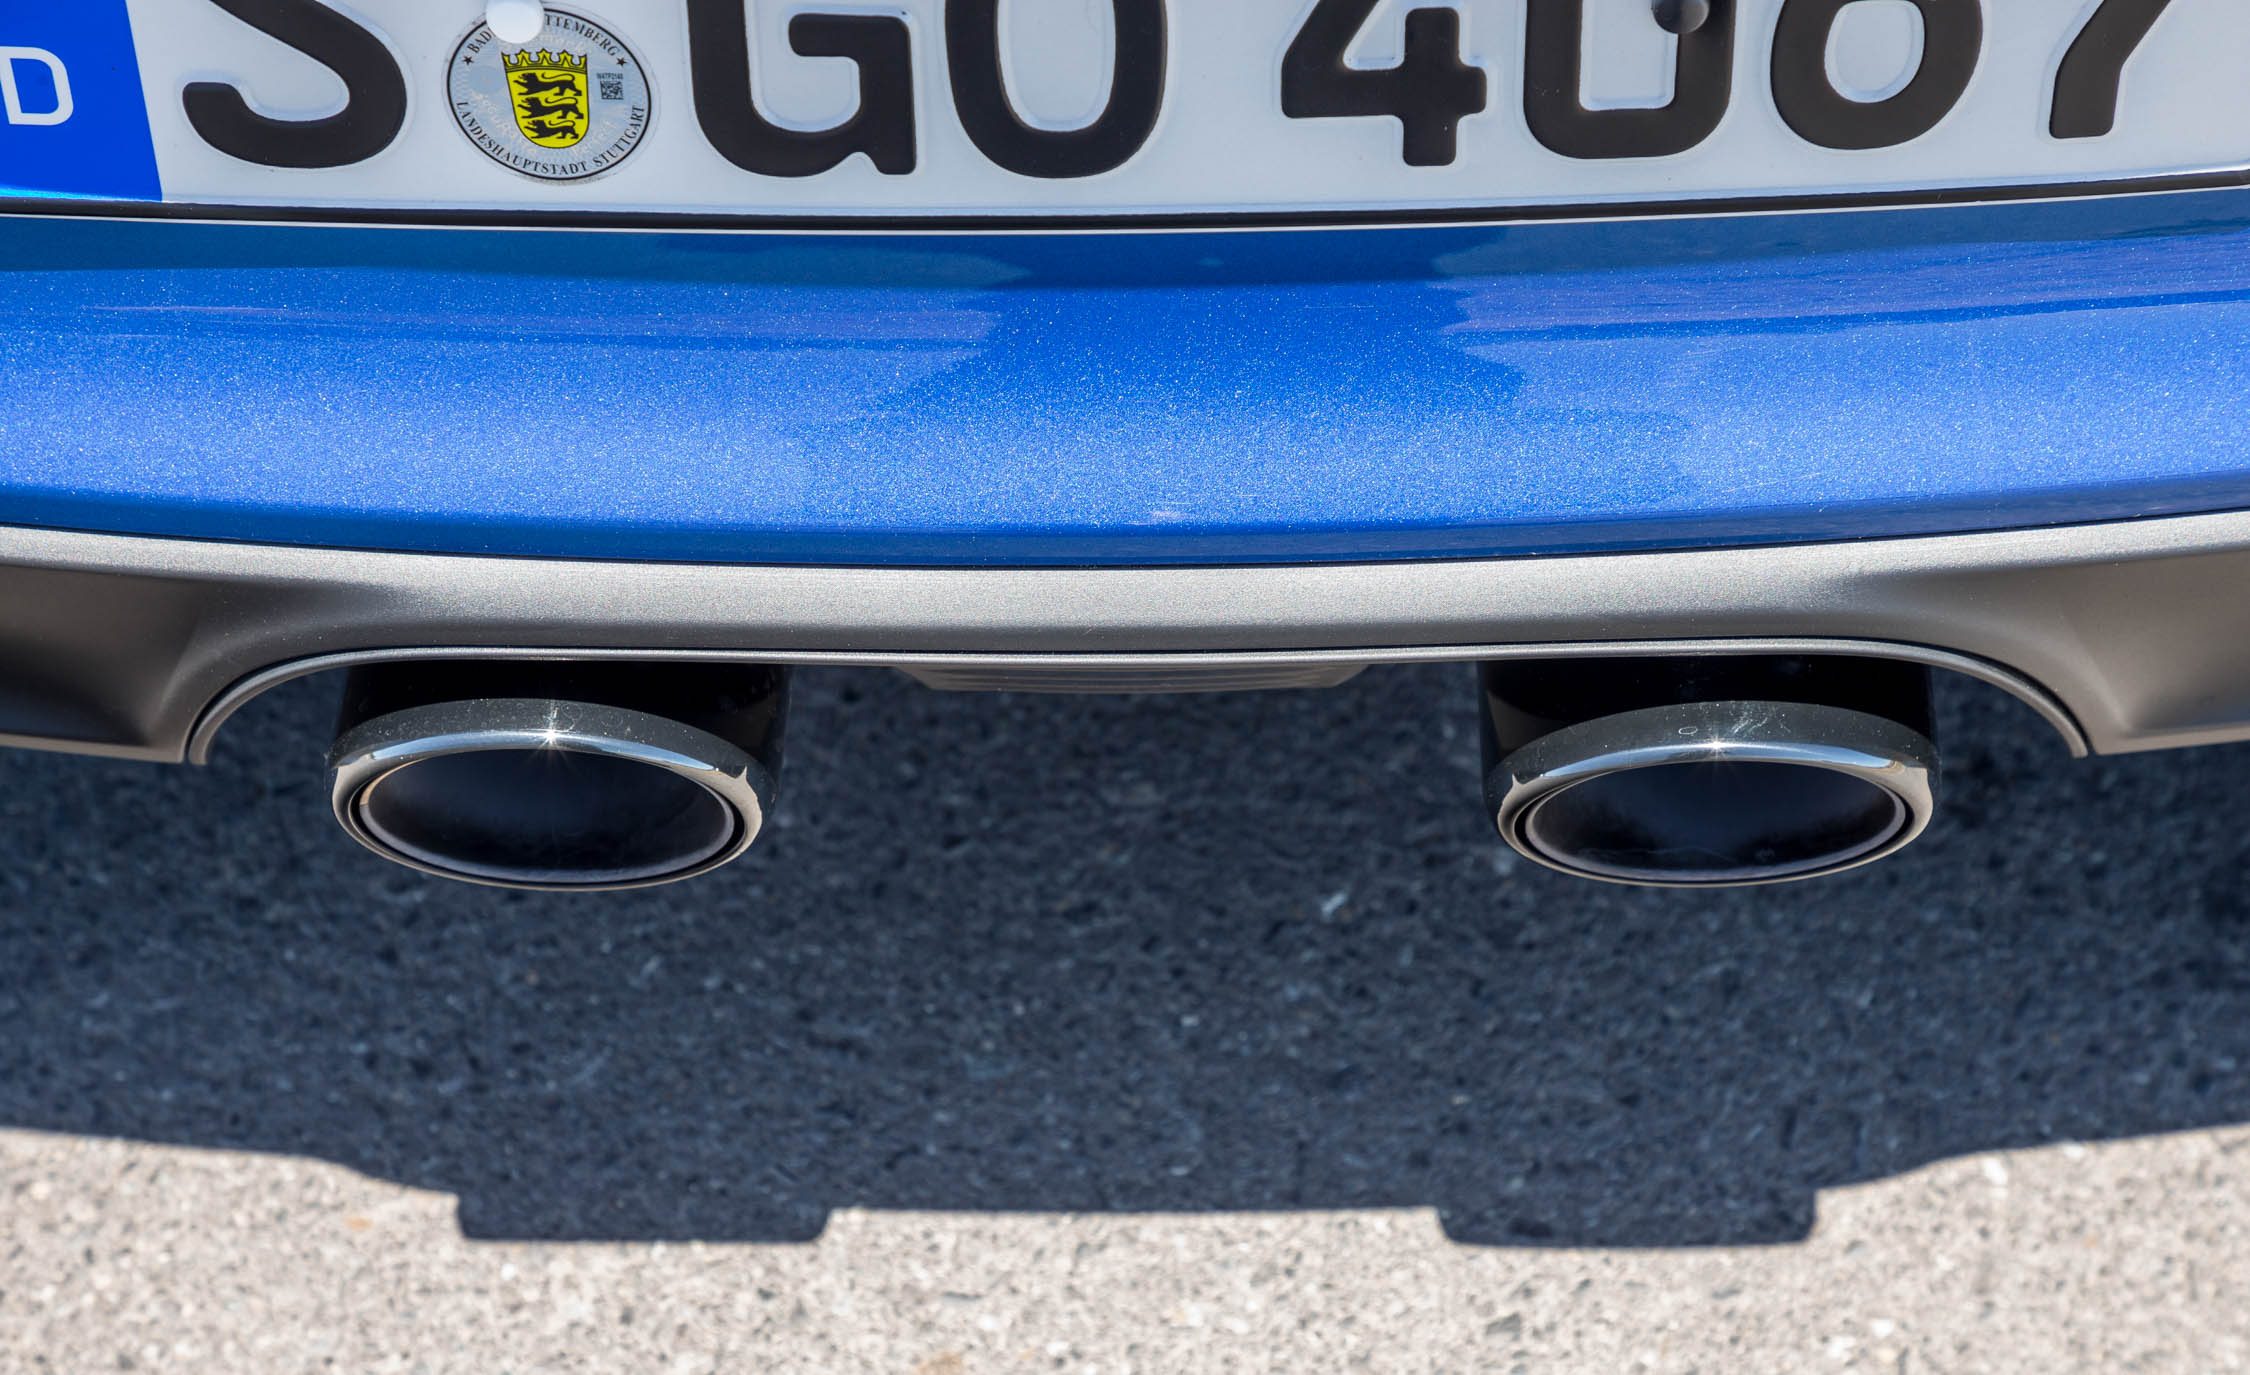 2017 Porsche 911 Carrera 4 GTS Coupe Exterior View Exhaust Muffler (Photo 19 of 97)